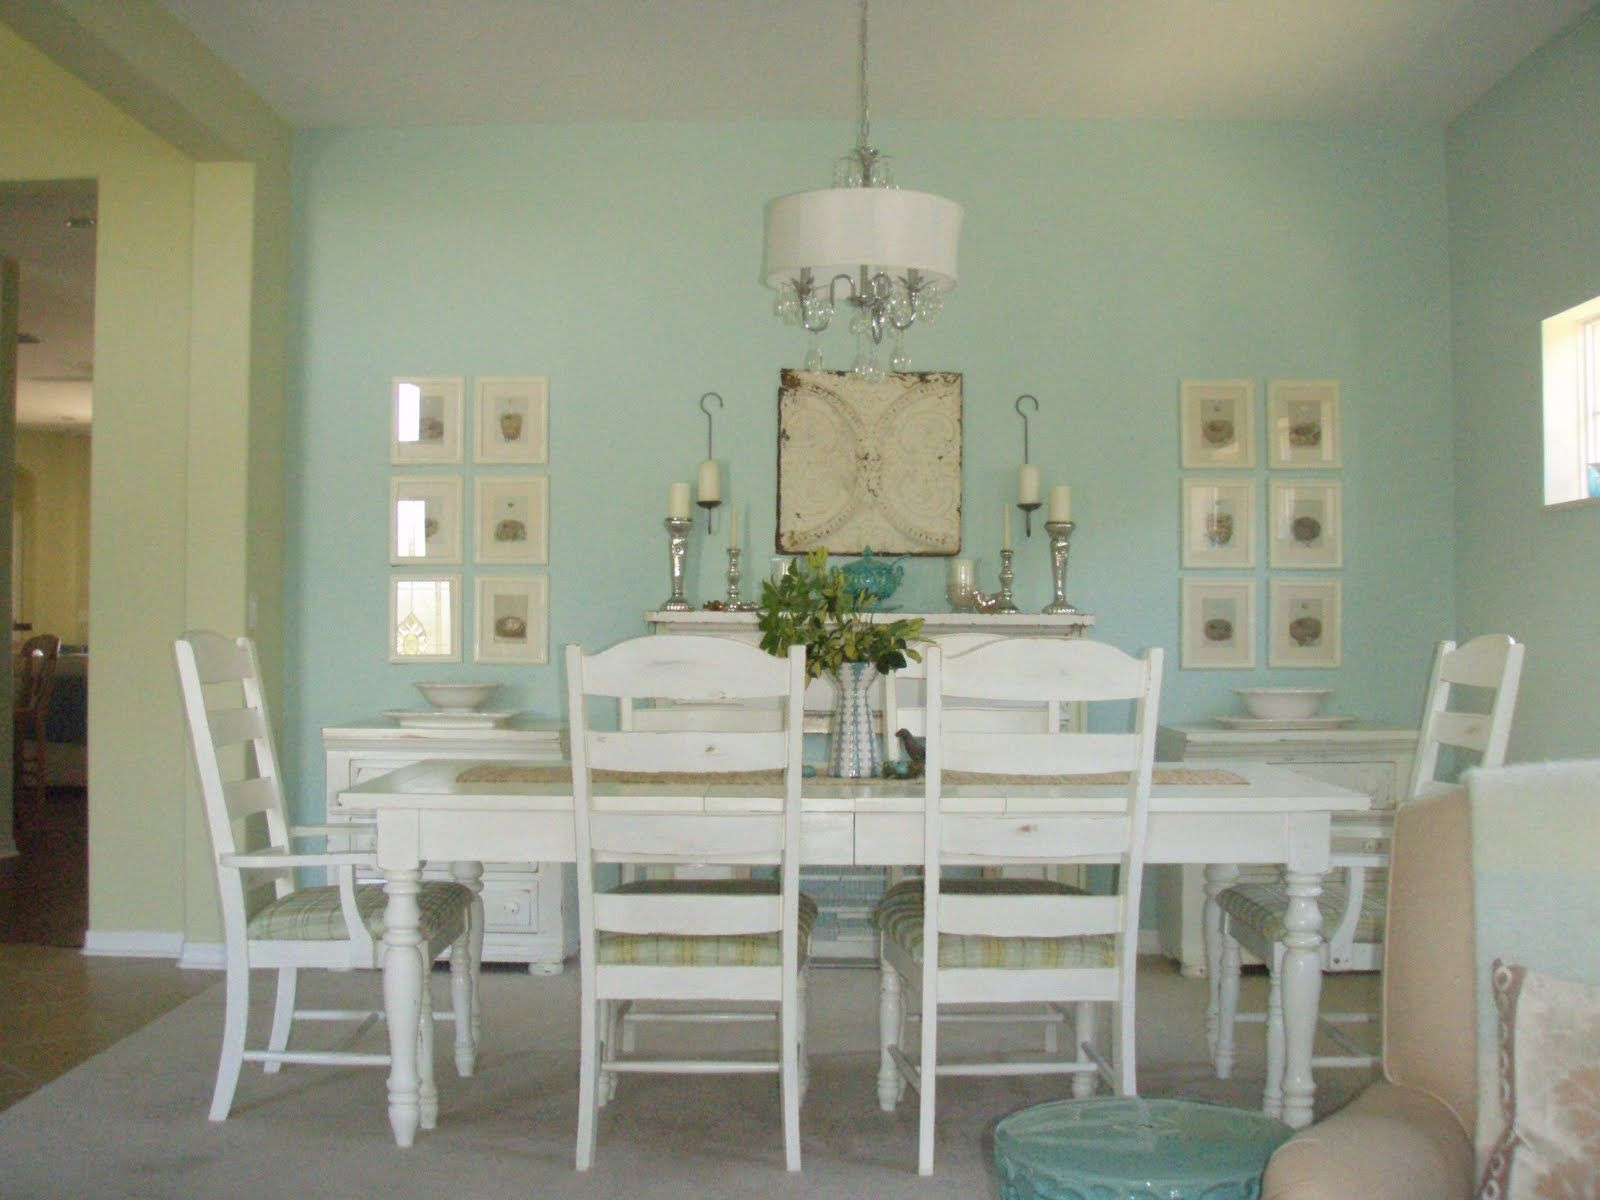 White Farmhouse Table, Love The Seafoam Green Wall Color Too